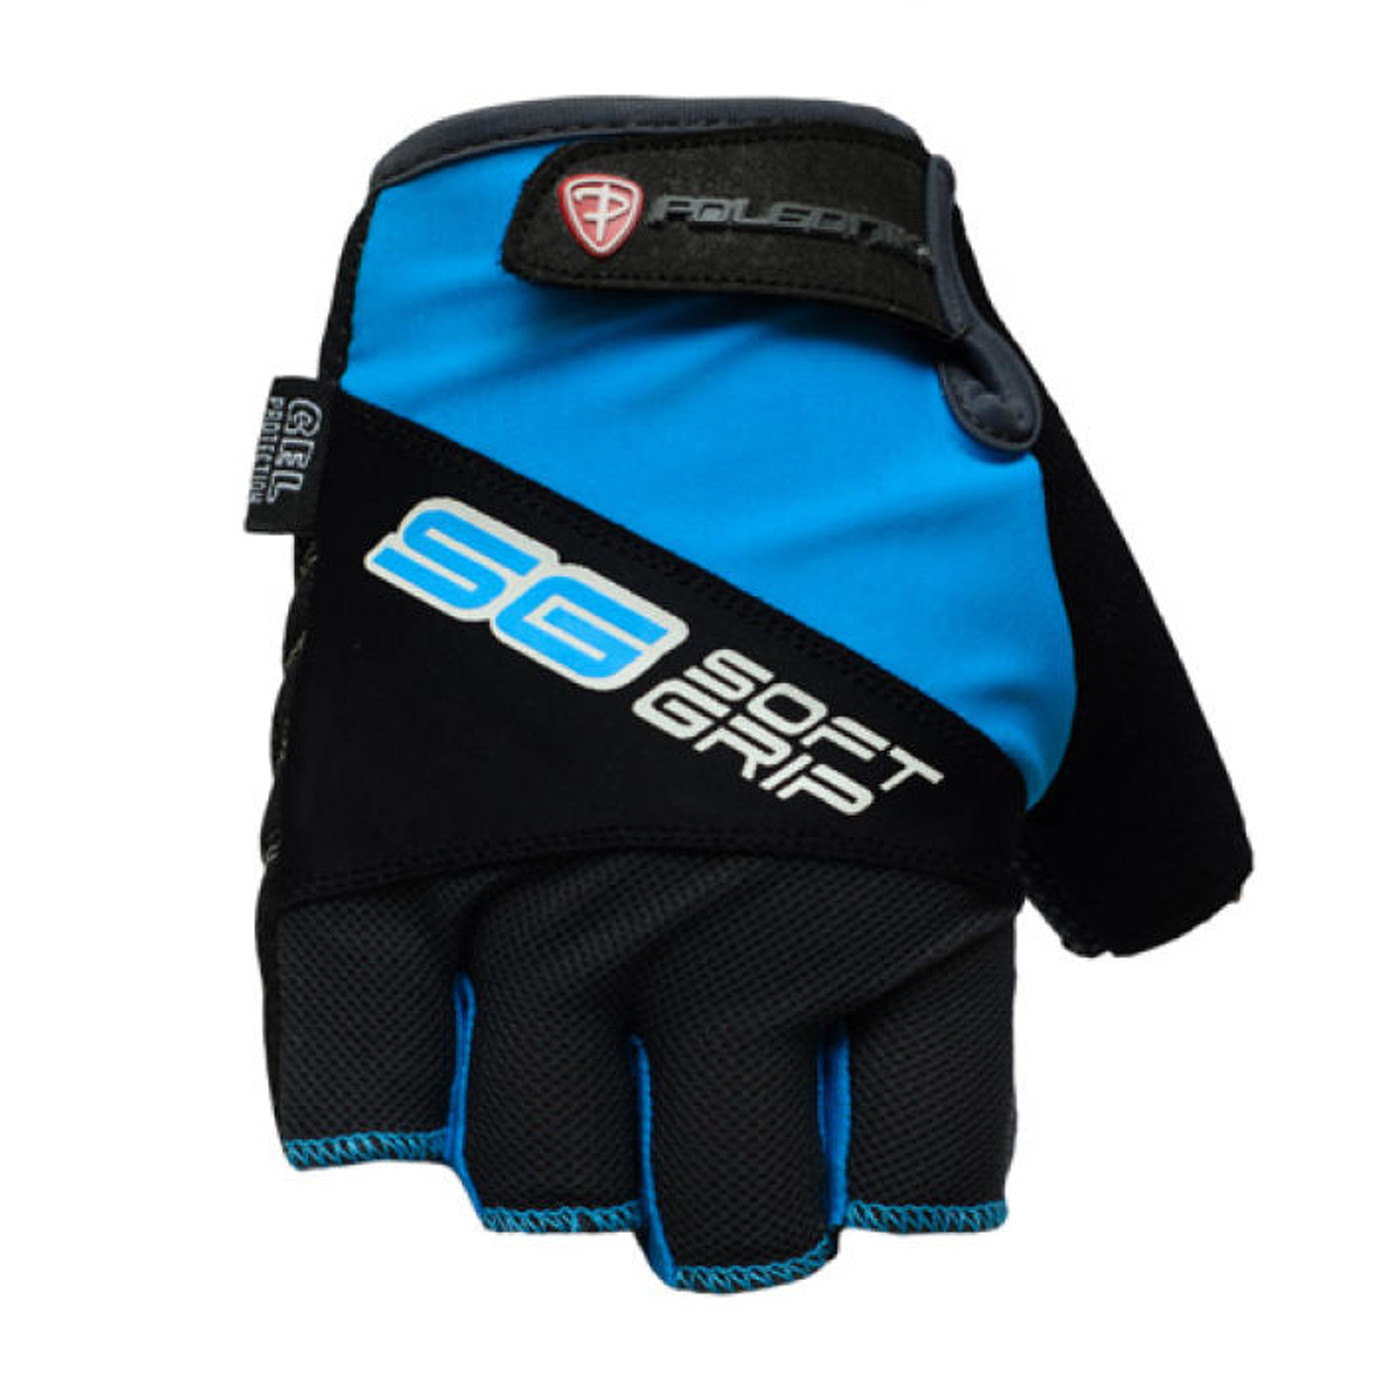 HIGH COLORADO Handschuhe SOFT G.N.